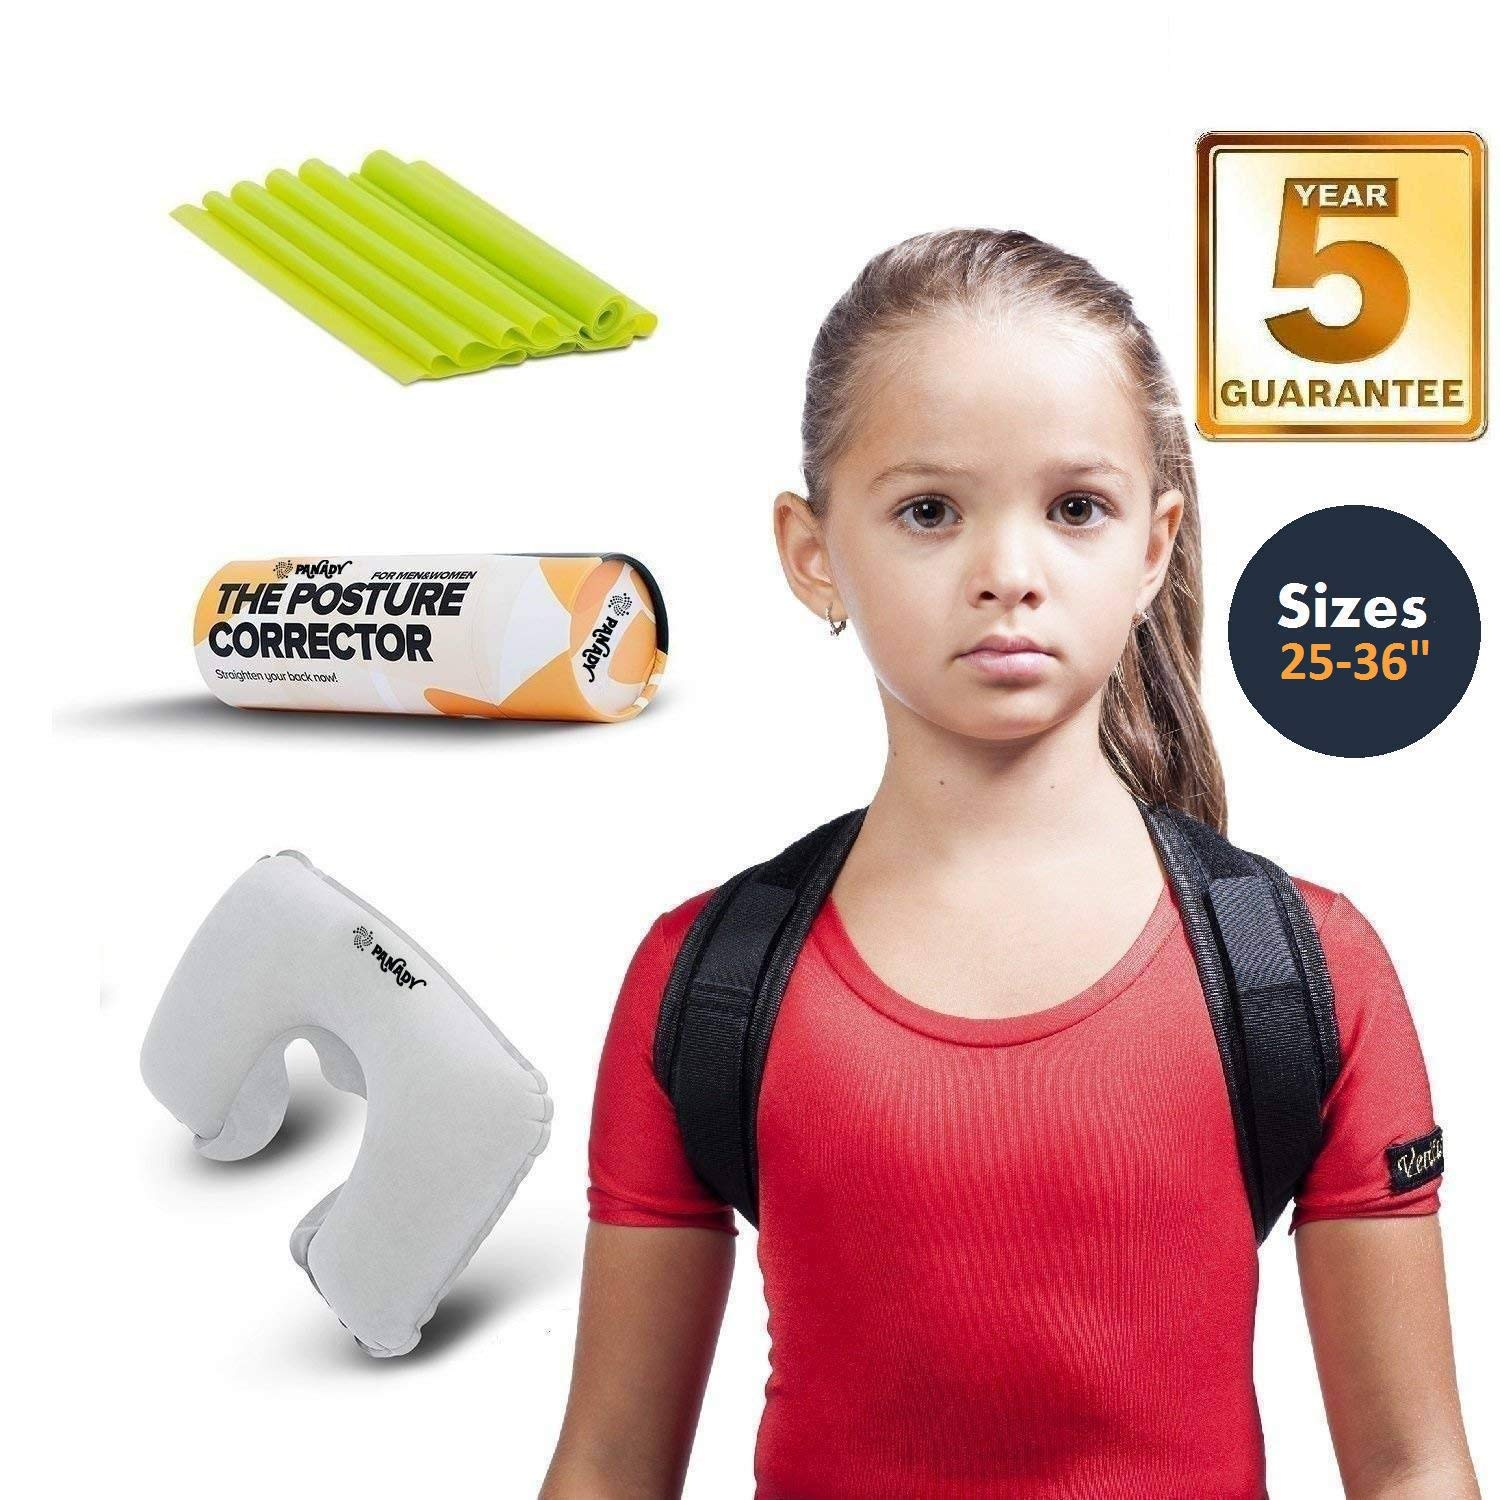 Posture Corrector, Comfortable With 5 YEARS WARRANTY, 28-35'' 8 to 22 years old teens by PANADY